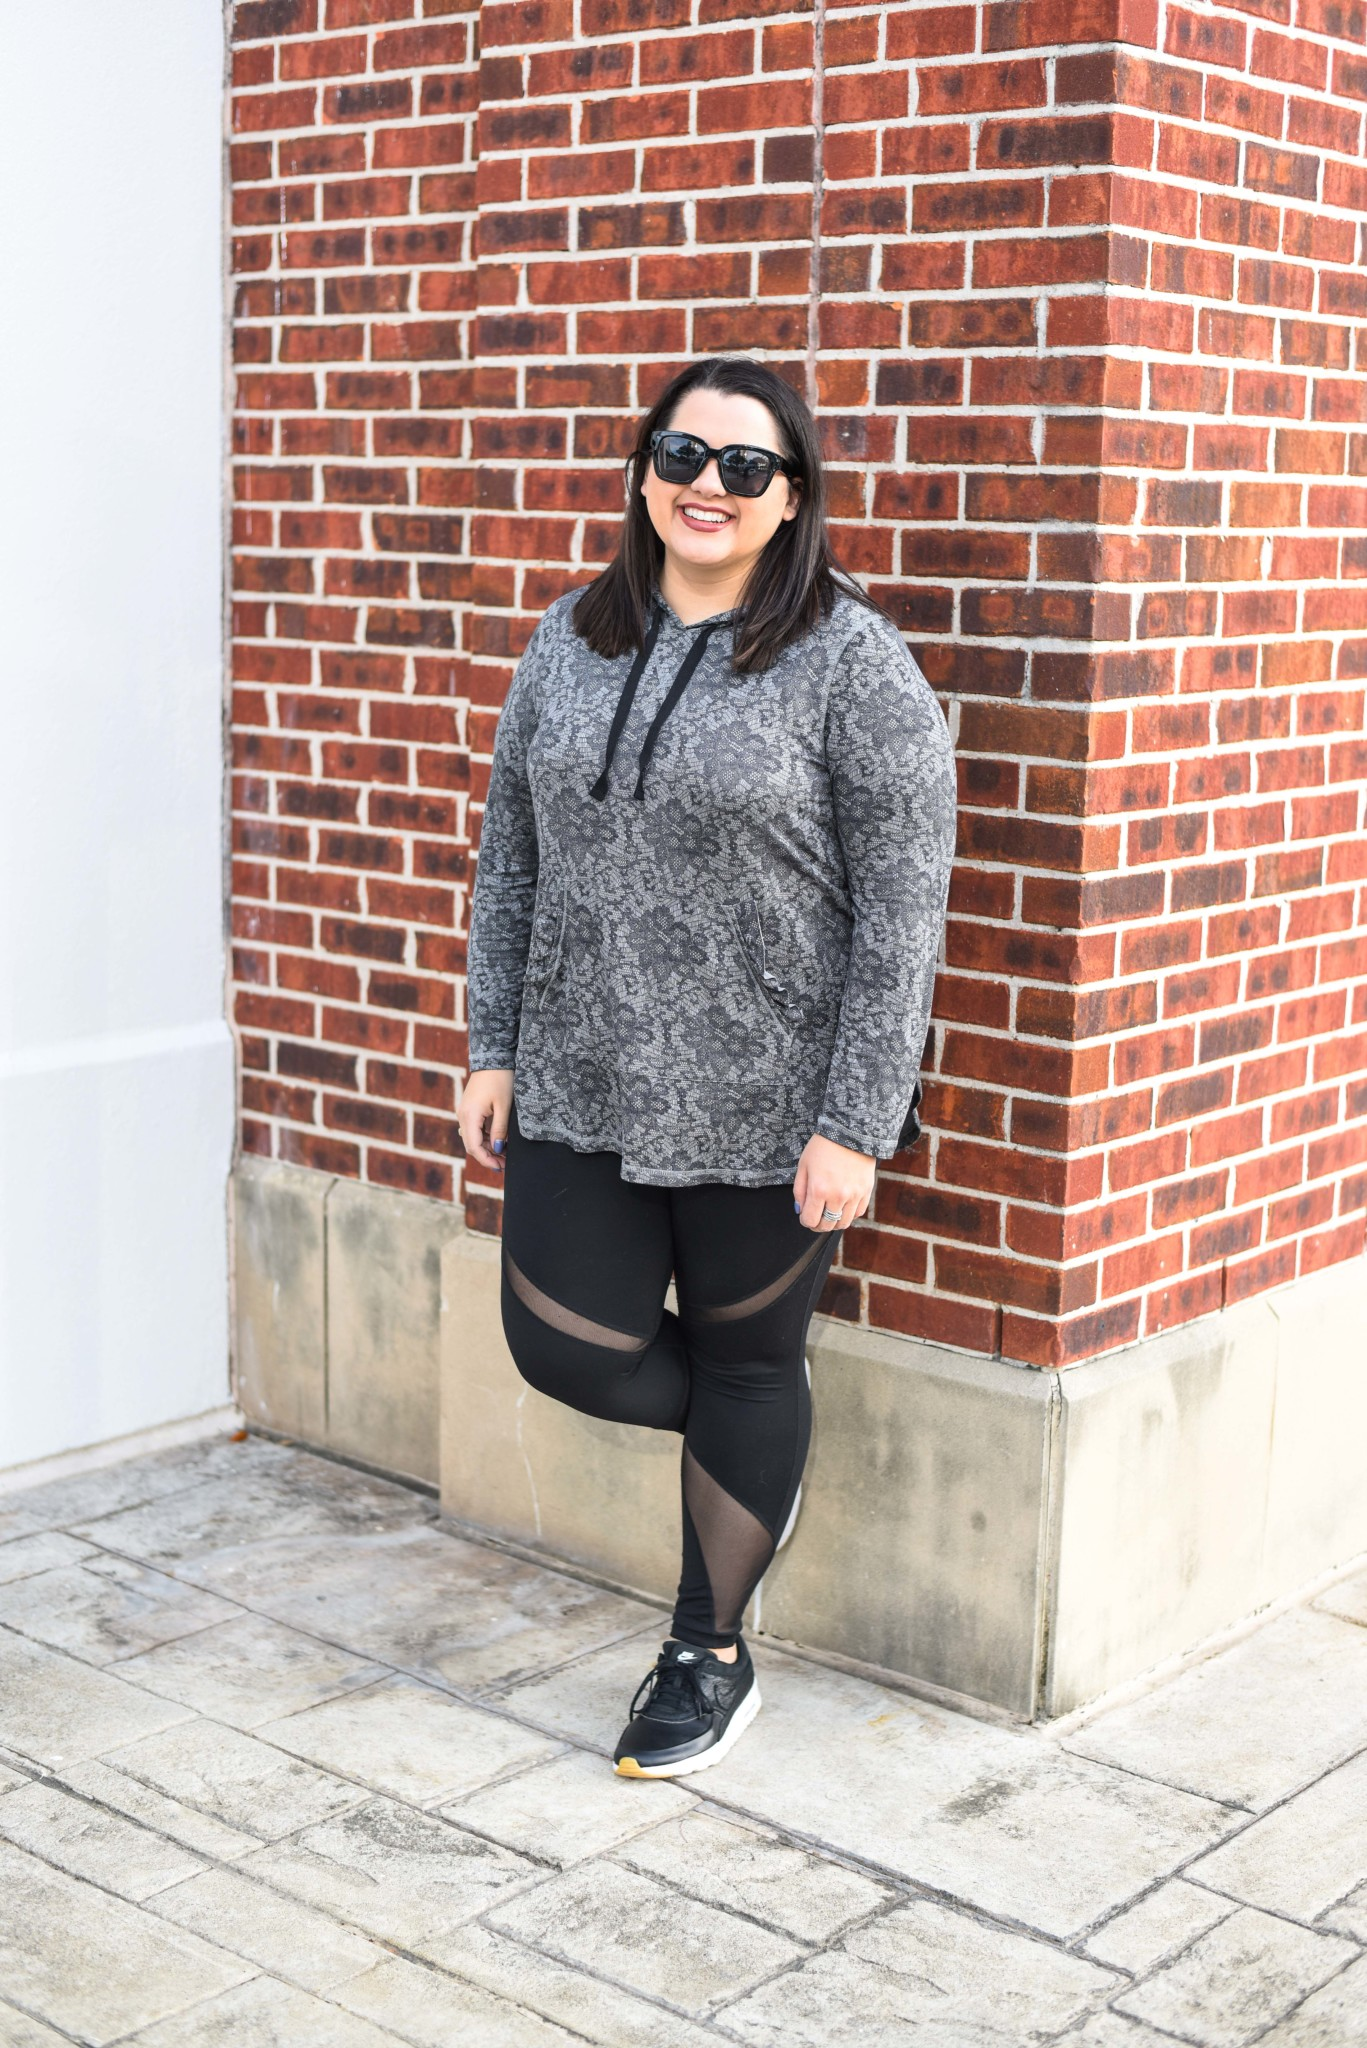 LIVI Activewear Hoodie with Ruffle Detail on Sale during Lane Bryant's Cyber Week Sale